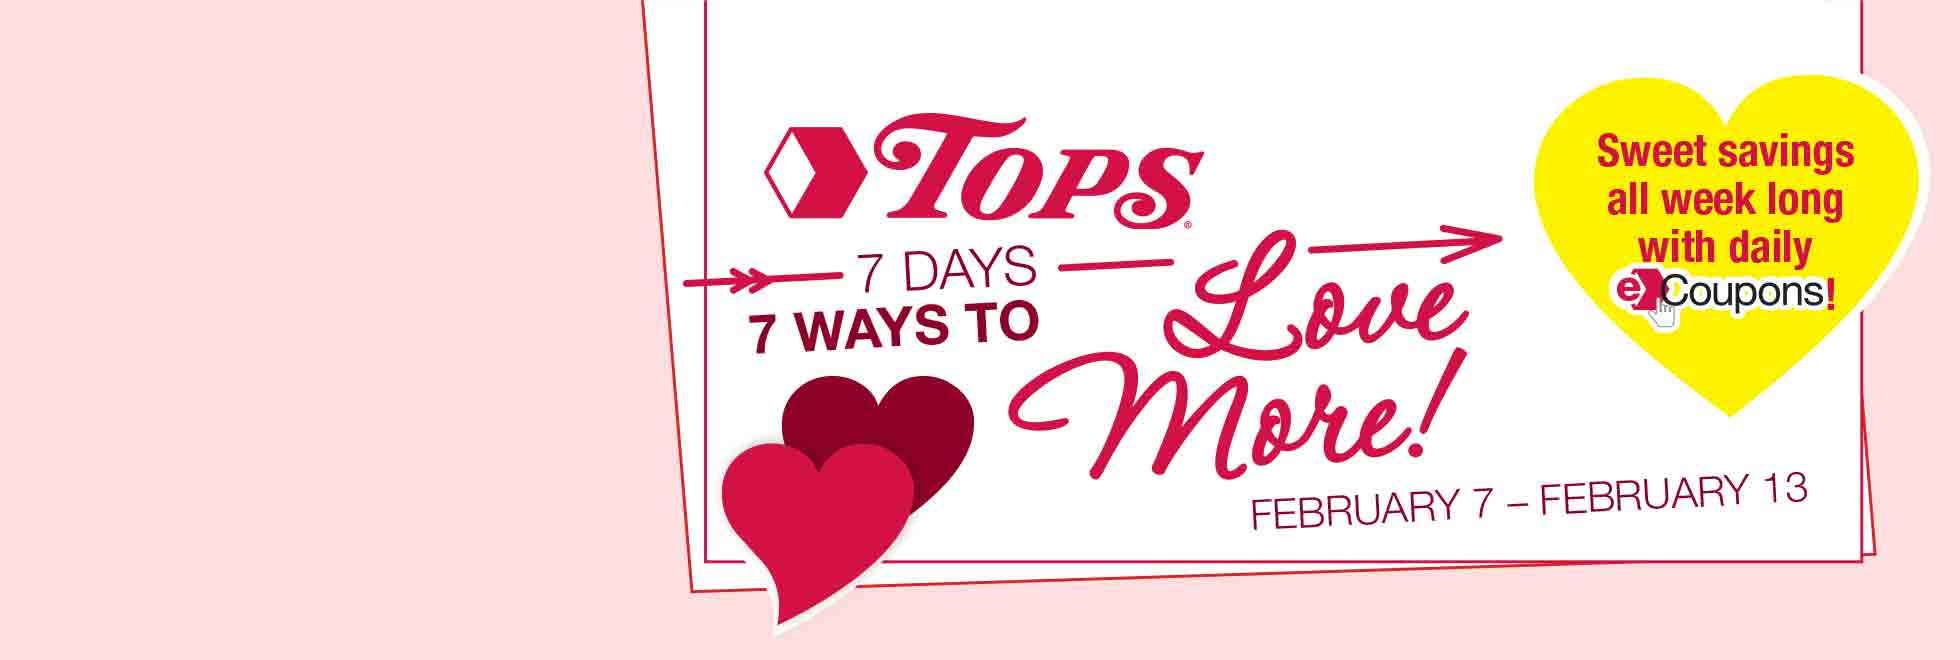 7 Days 7 Ways to Love with daily eCoupons